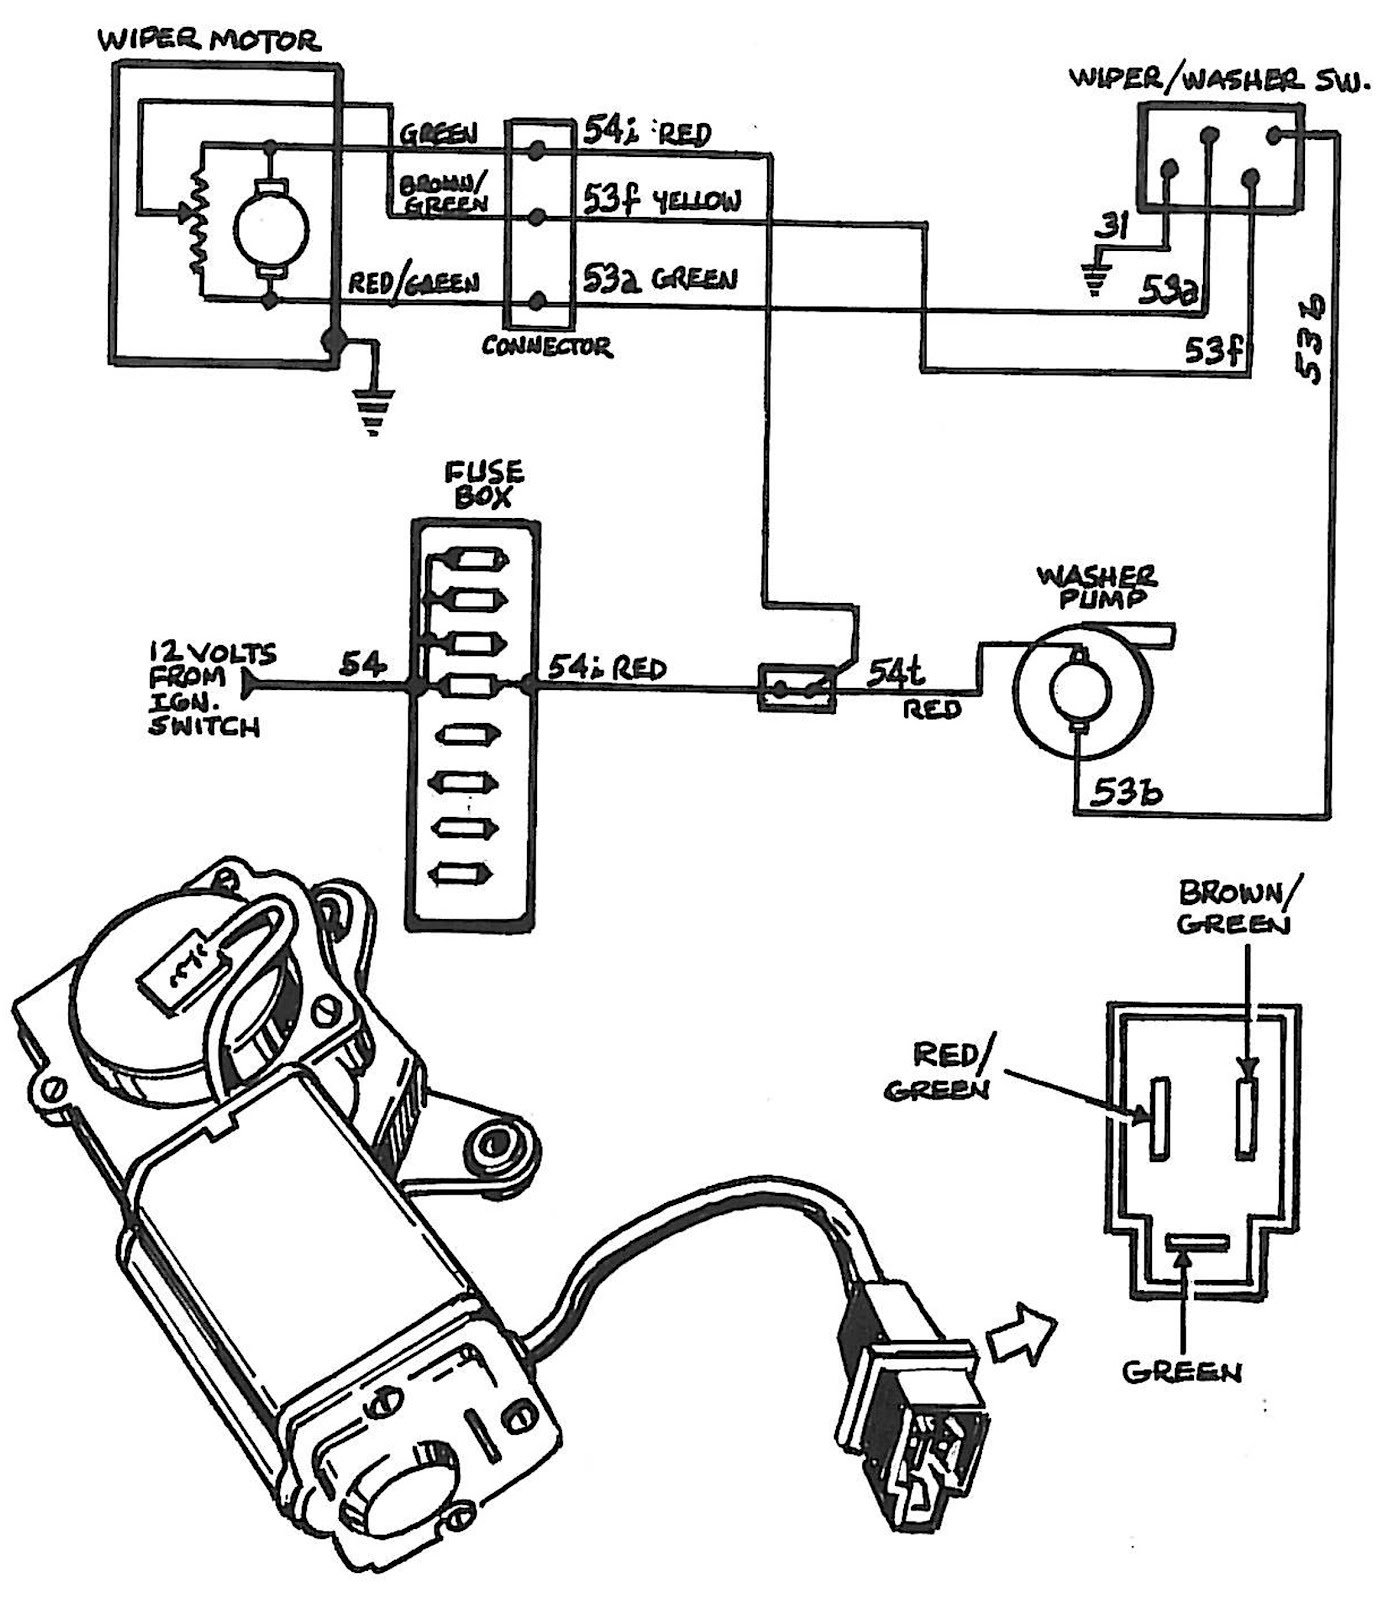 chevy windshield wiper motor wiring diagram CgTTPww wiring diagram for boat wiper motor the wiring diagram 1986 chevy truck wiper motor wiring diagram at panicattacktreatment.co